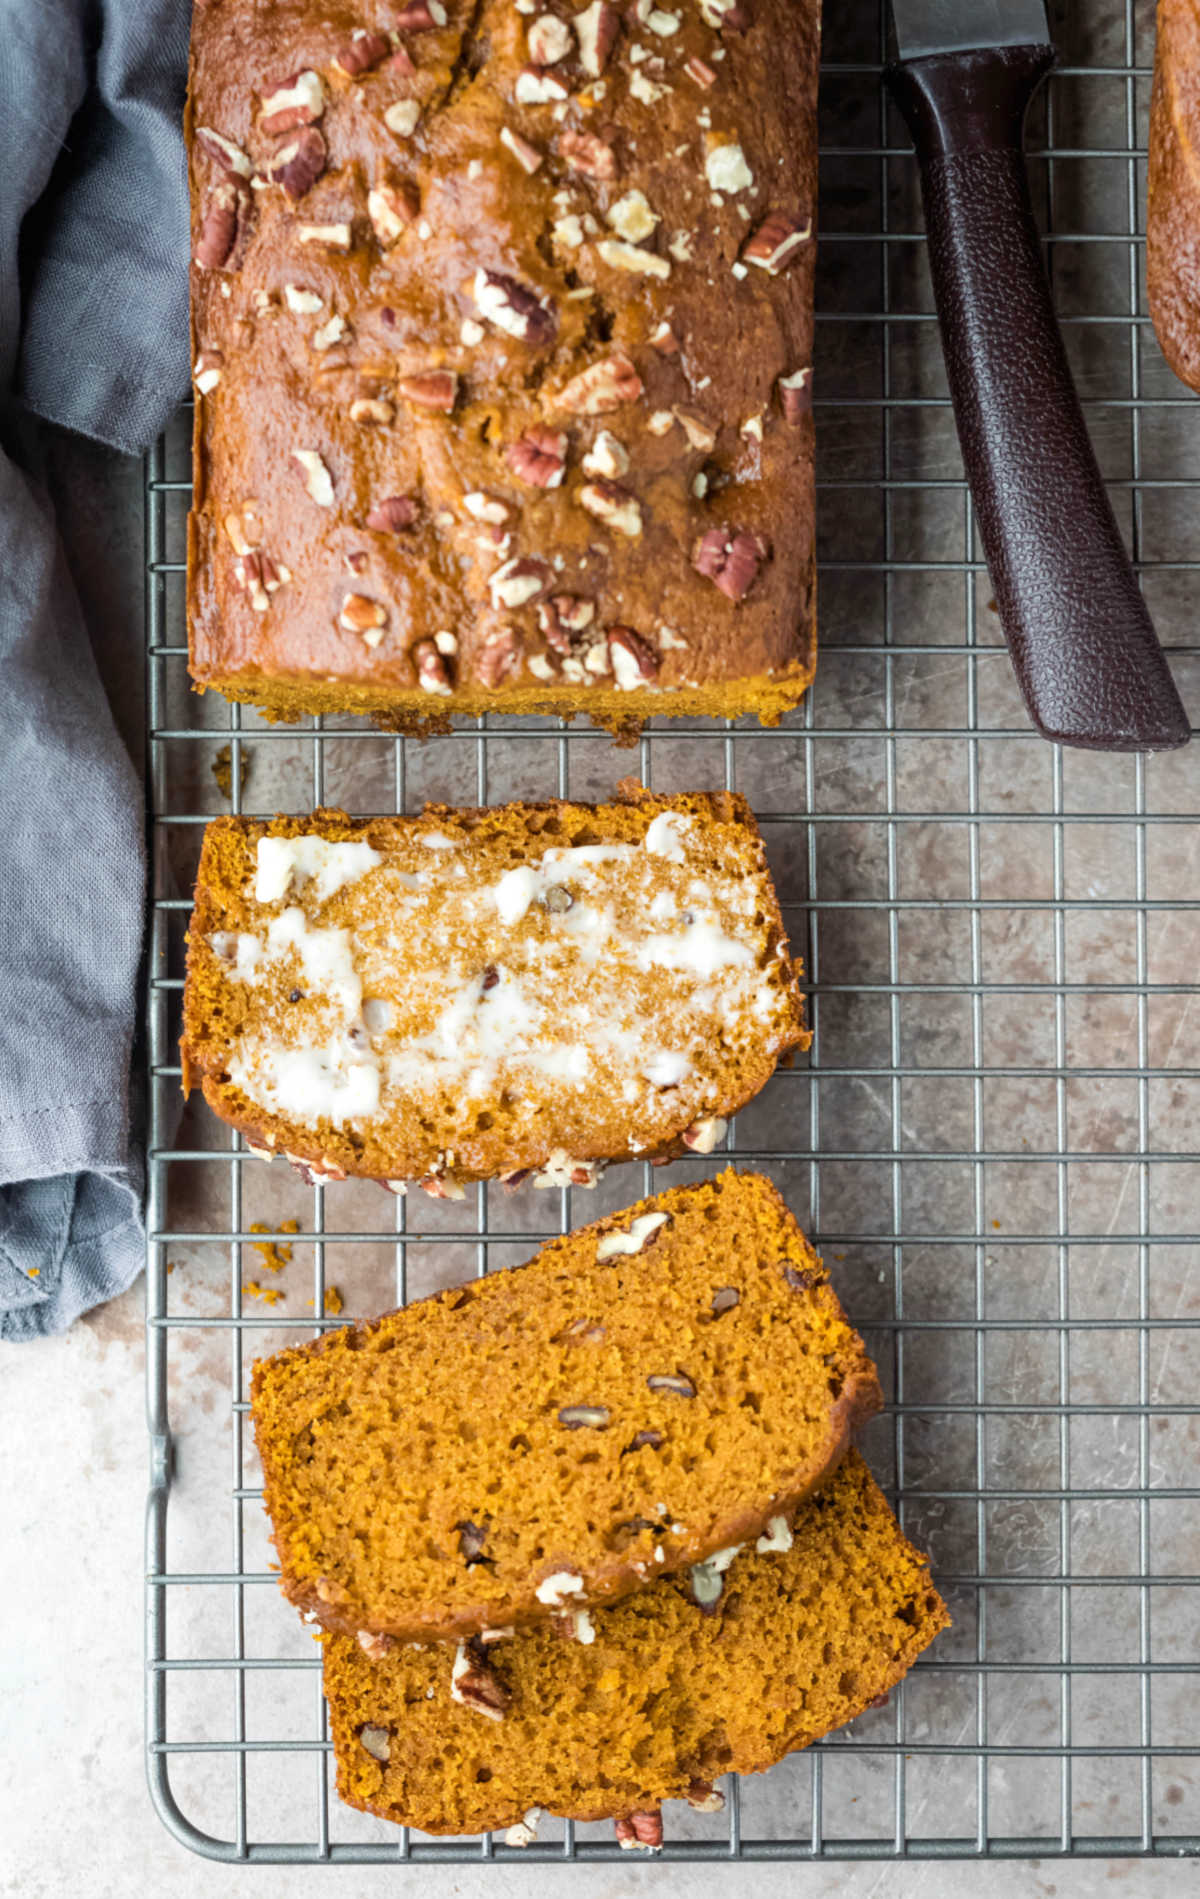 A loaf of pumpkin nut bread next to a bread knife.